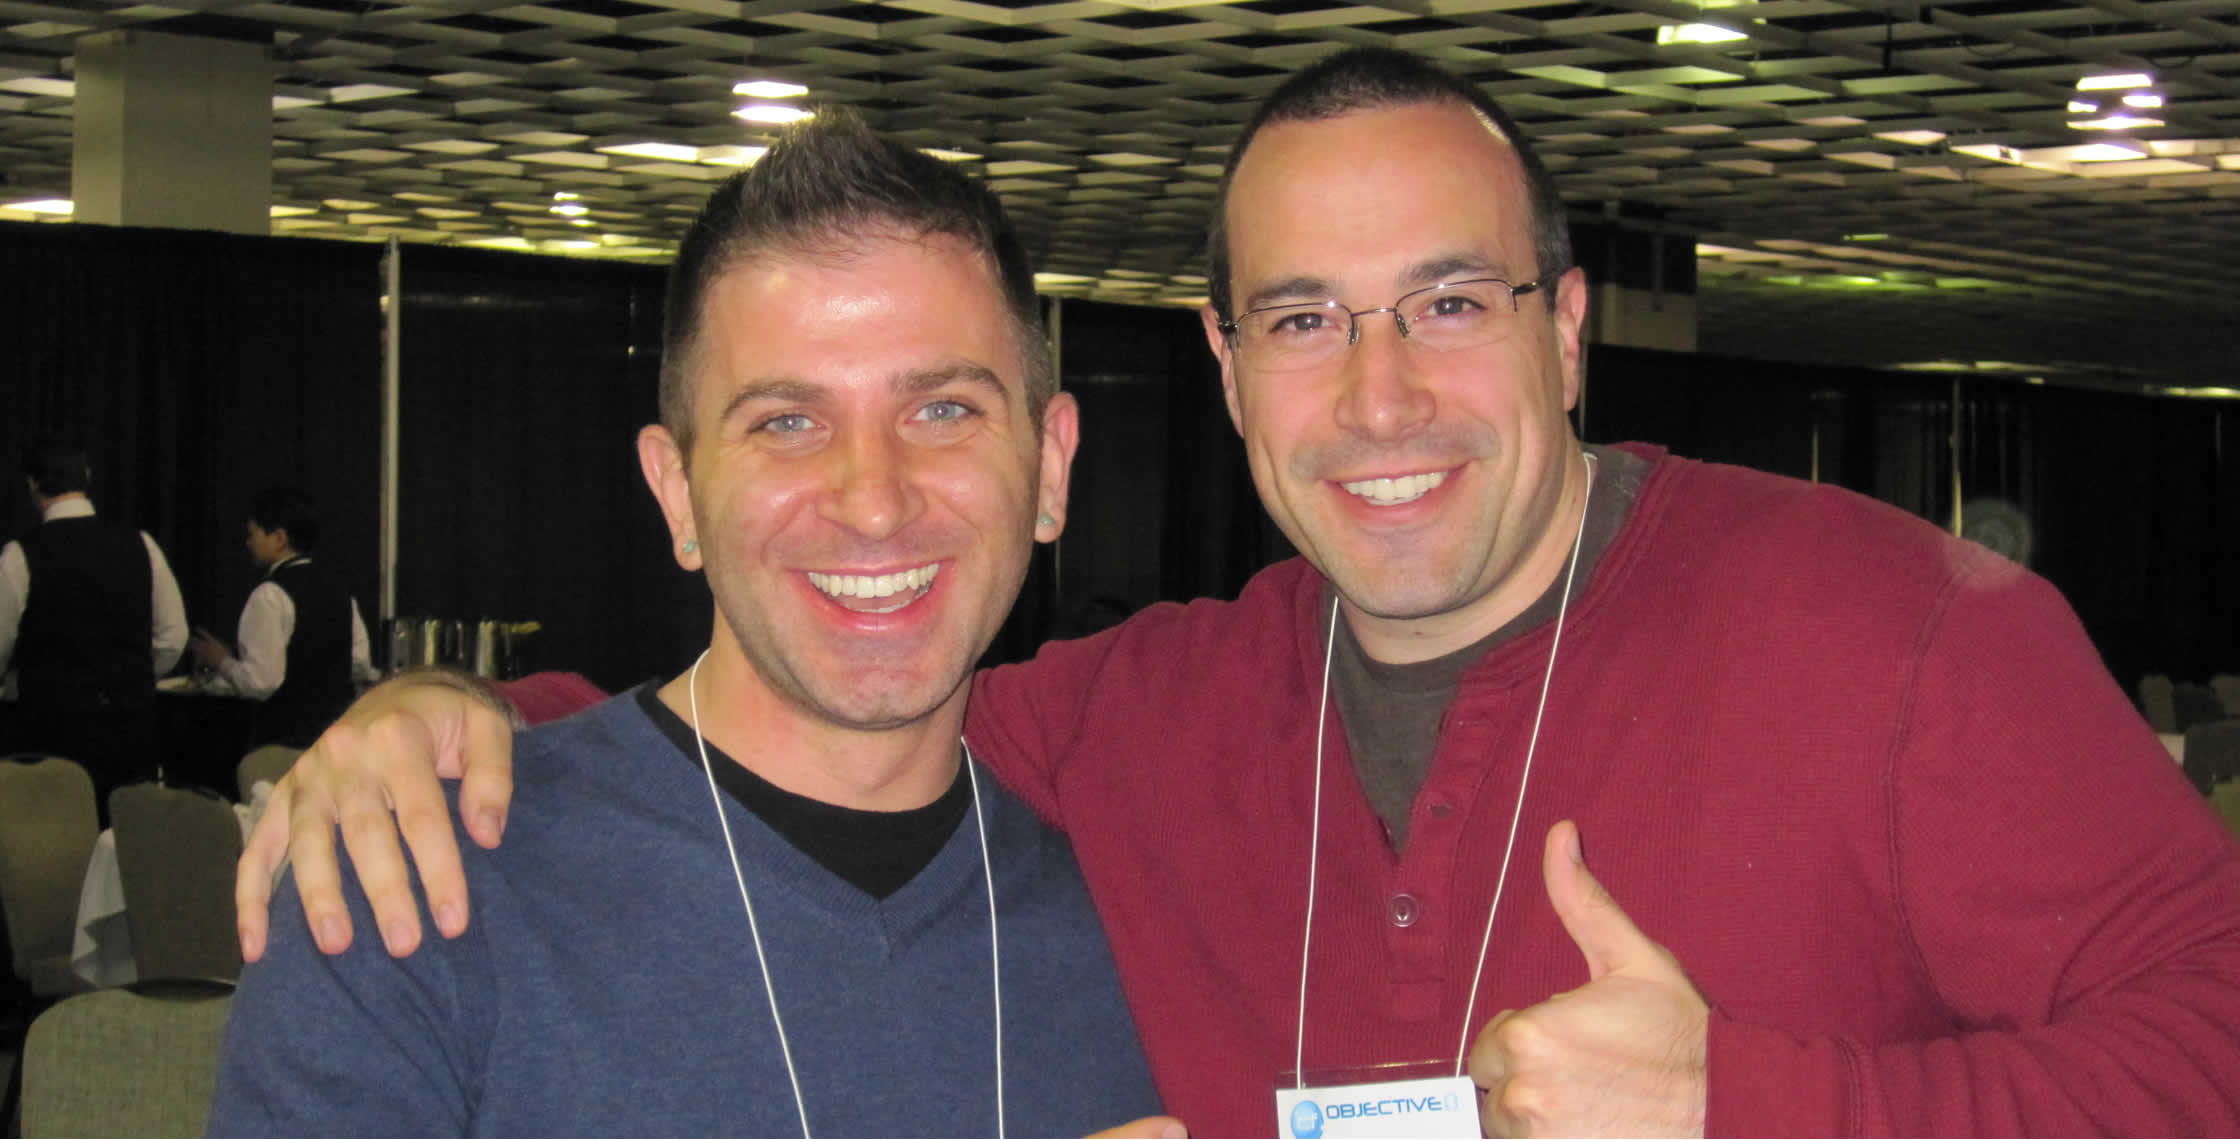 Ben Nadel at cf.Objective() 2012 (Minneapolis, MN) with: Jason Seminara